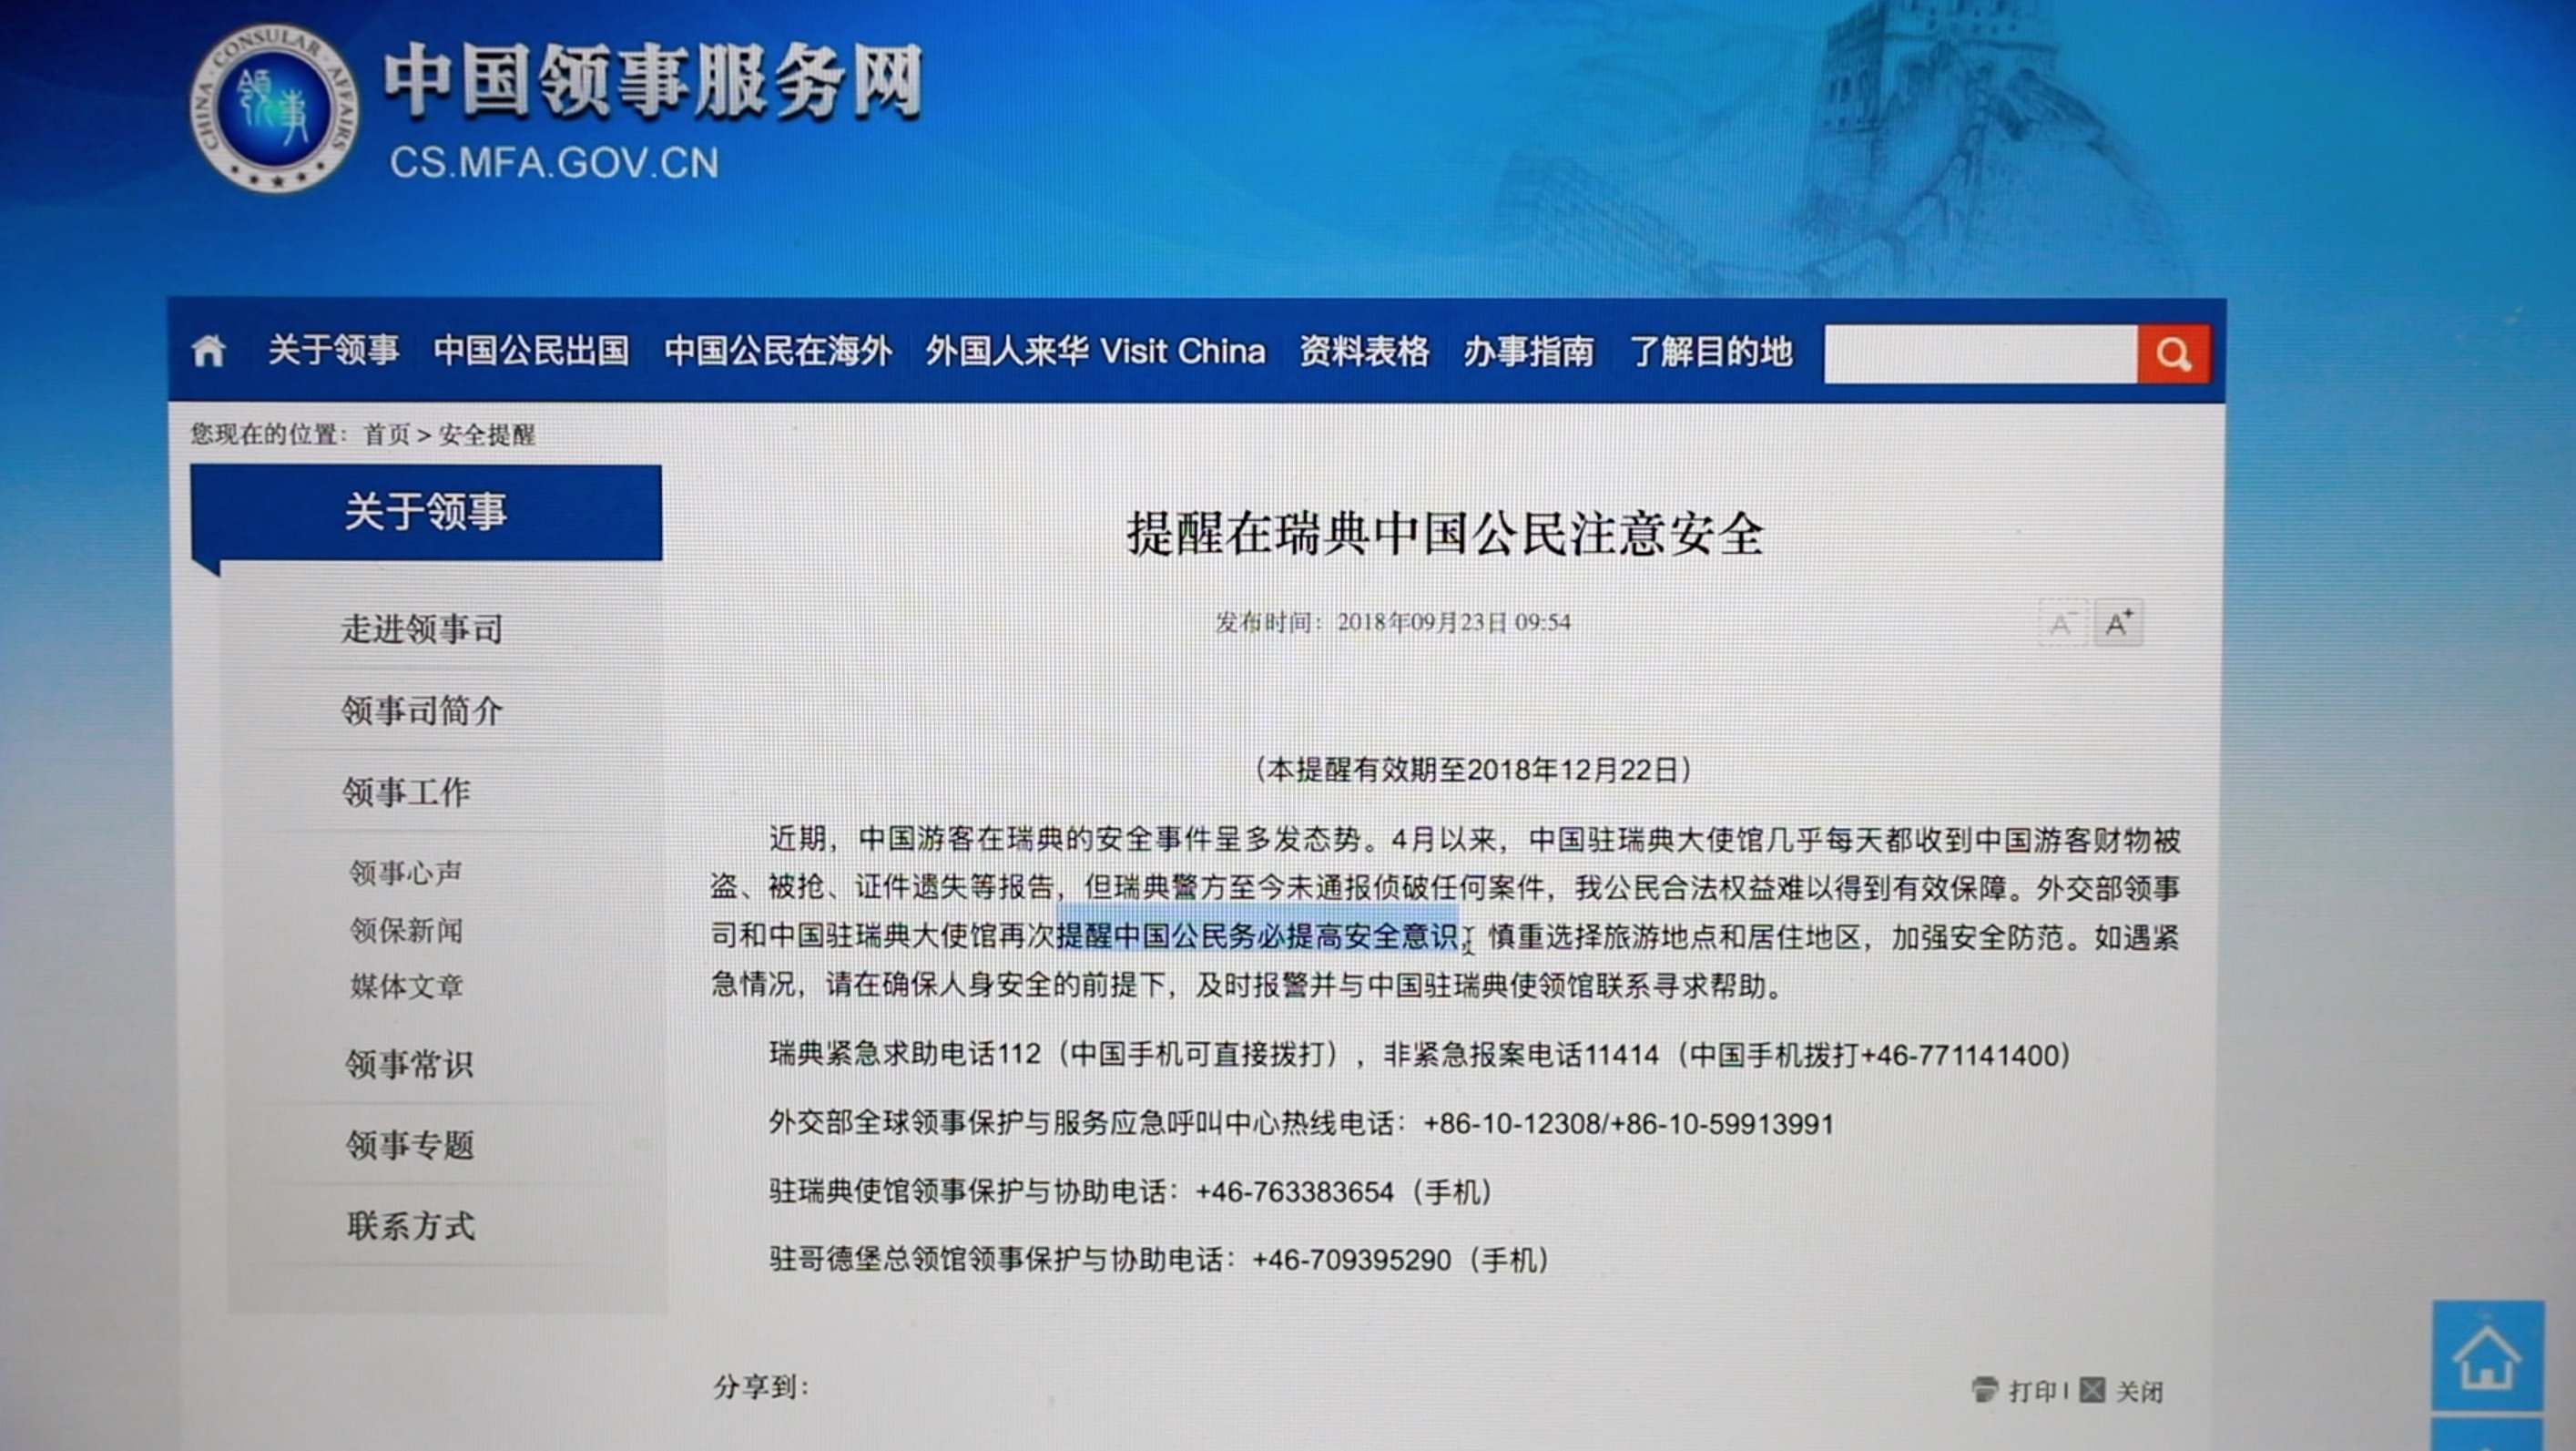 China reminds citizens in Sweden to pay attention to personal safety